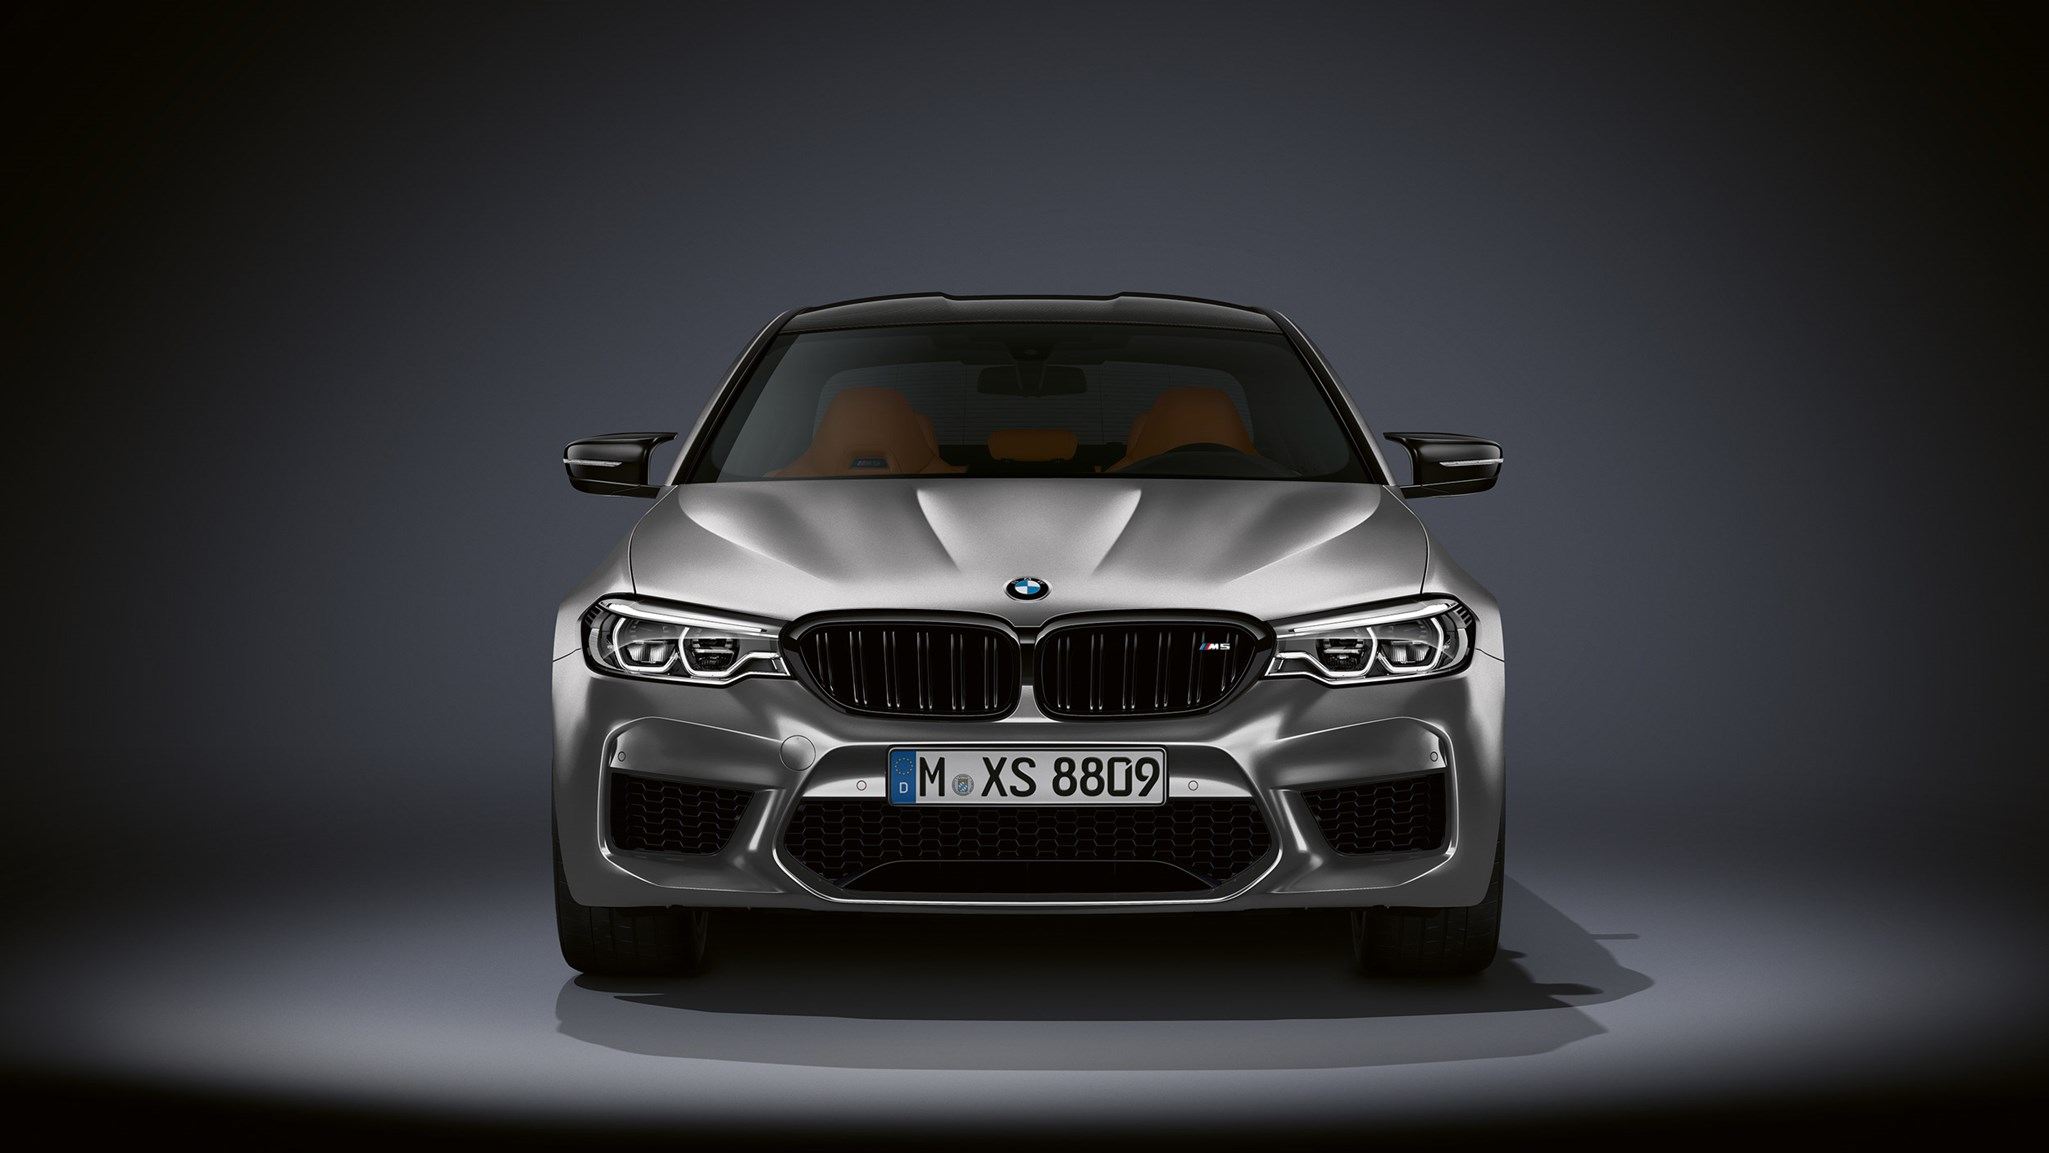 New Bmw M5 Compeion 2018 Uk Price Specs Features Performance Release Date